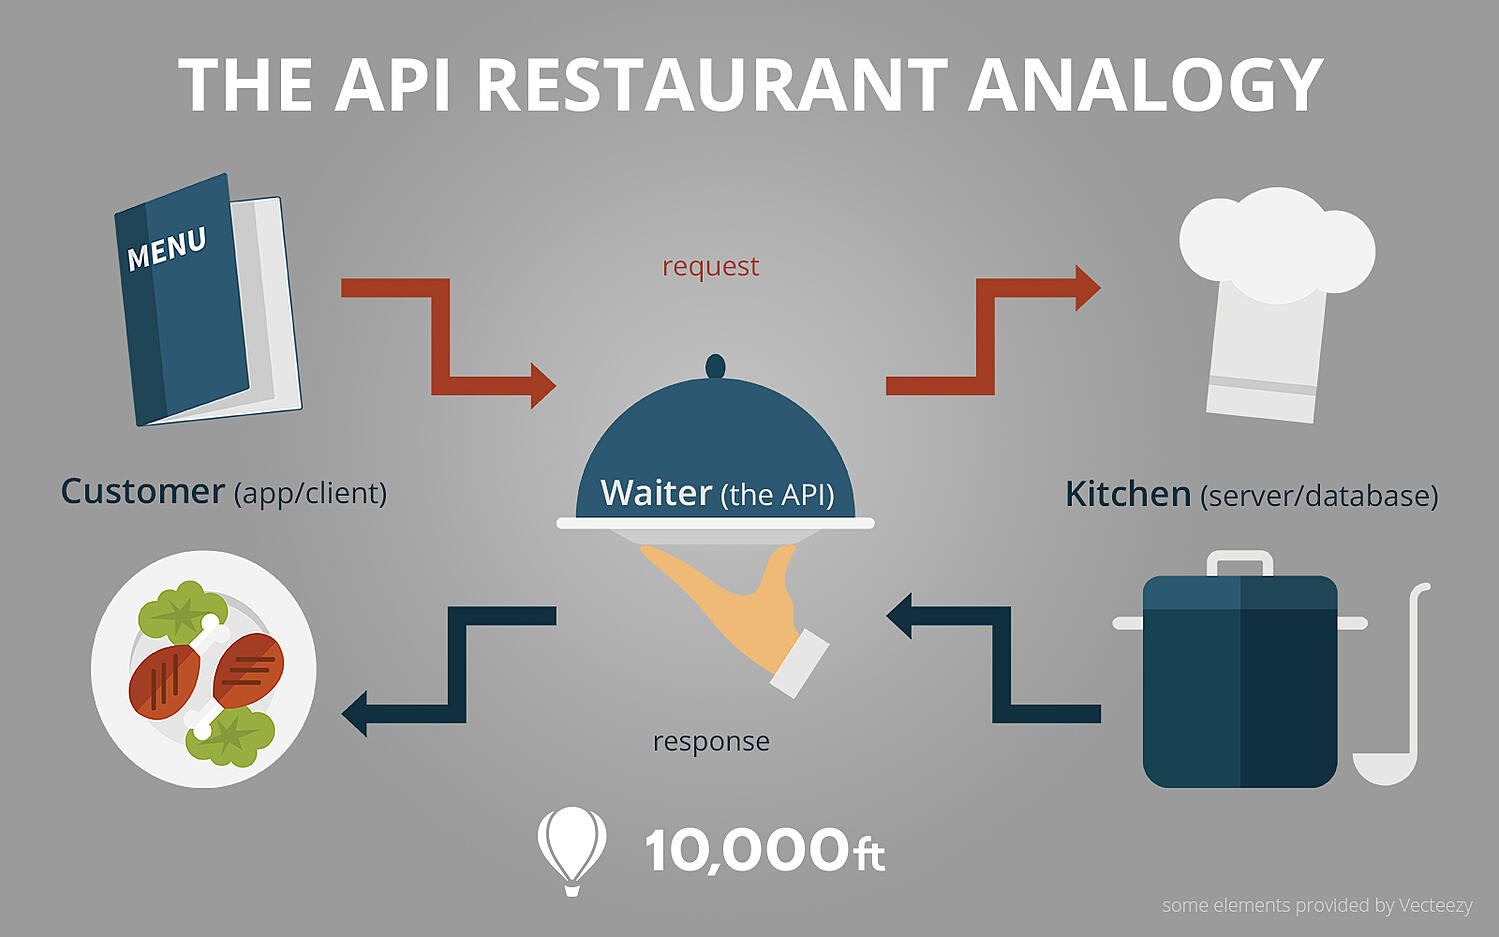 Visual depiction of API and restaurant analogy